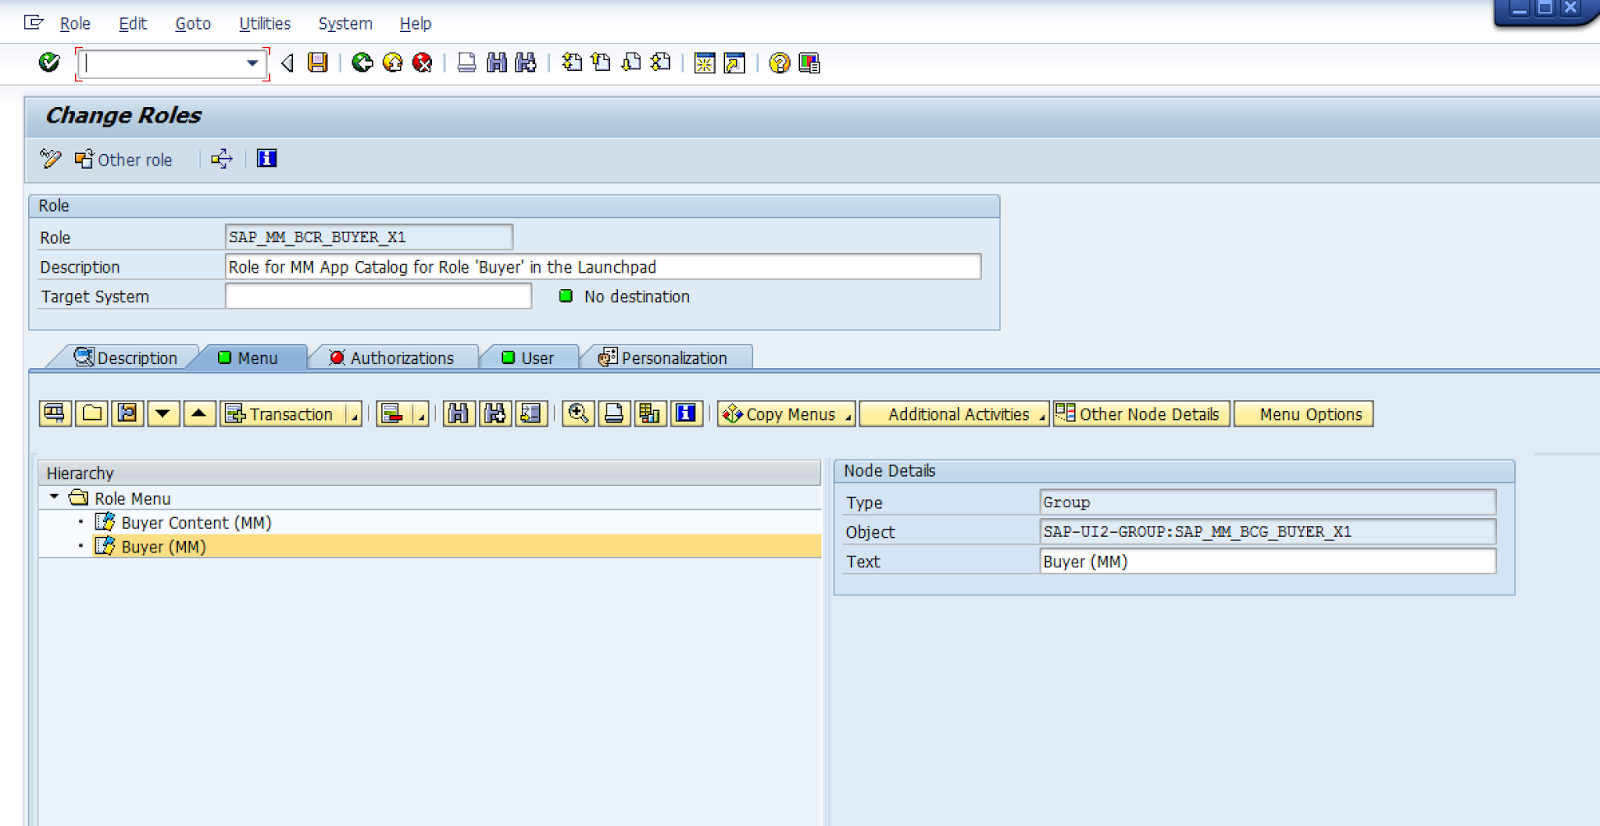 SAP Fiori - Role for Track Purchase Order (MM Buyer)